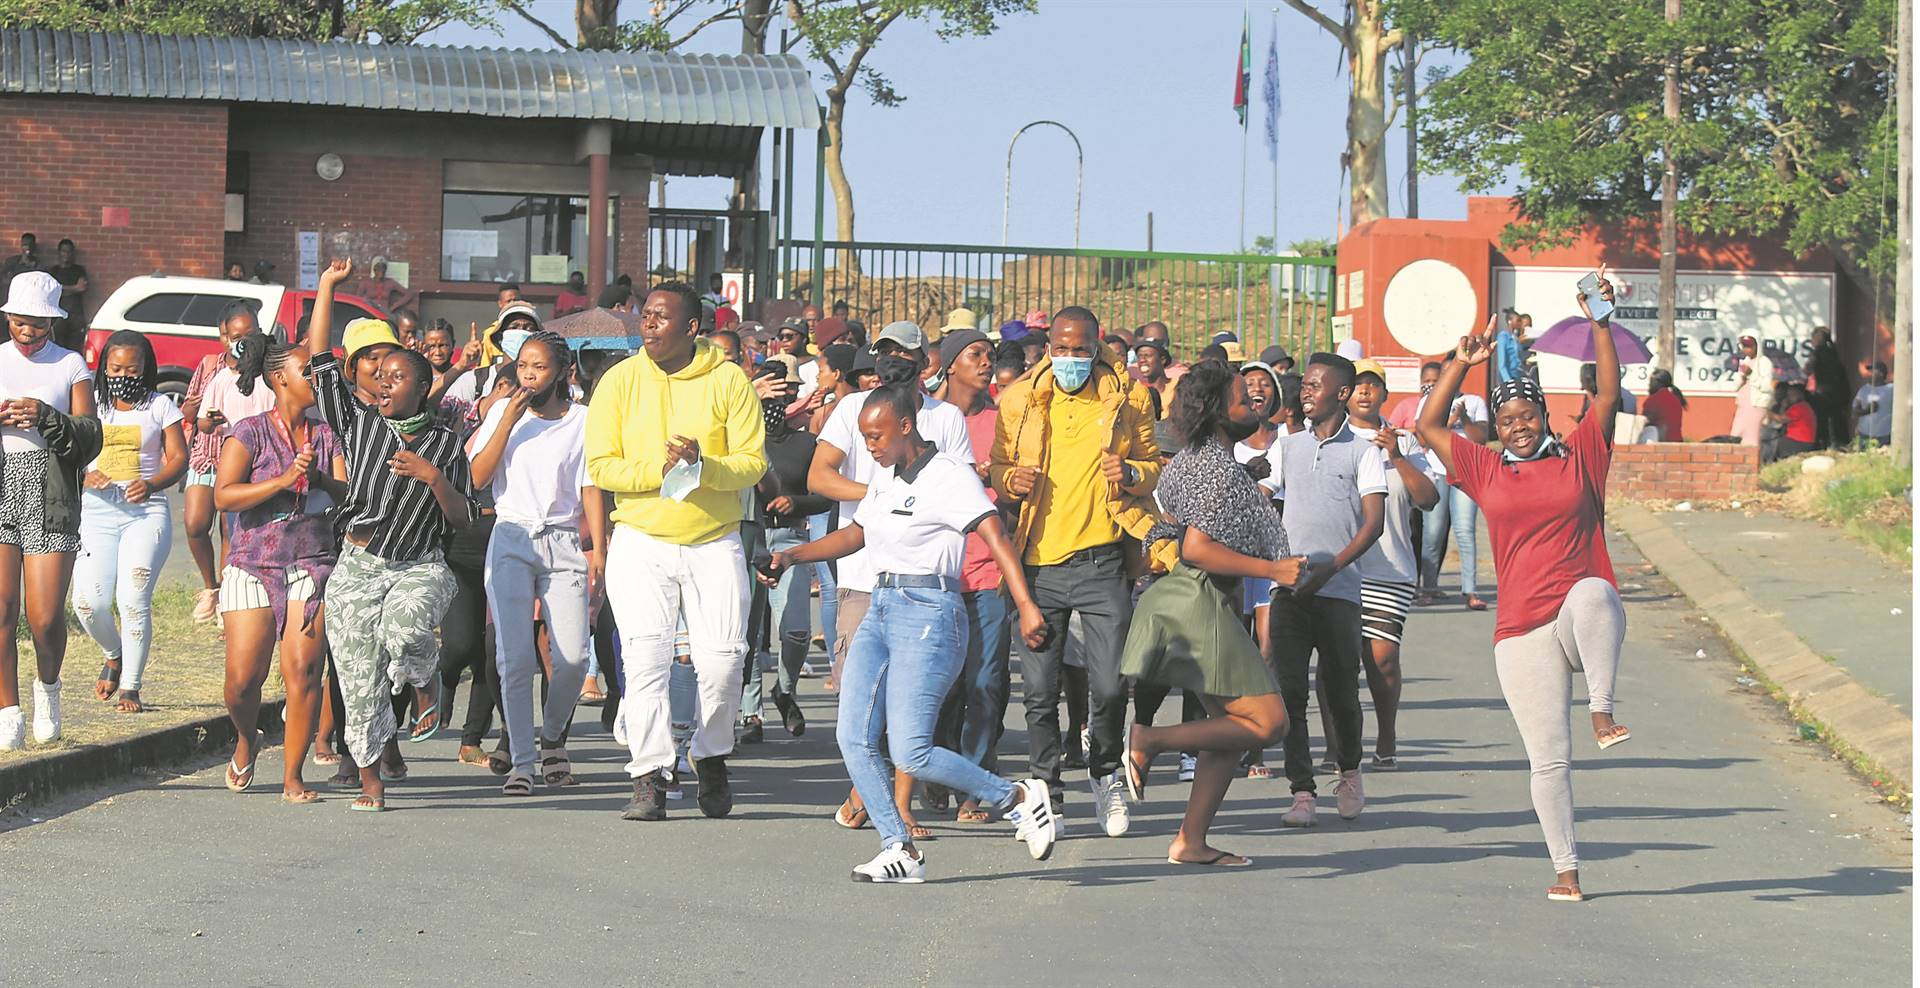 Students at the Esayidi Tvet College on the KZN South Coast say they have also not received their NSFAS allowances.